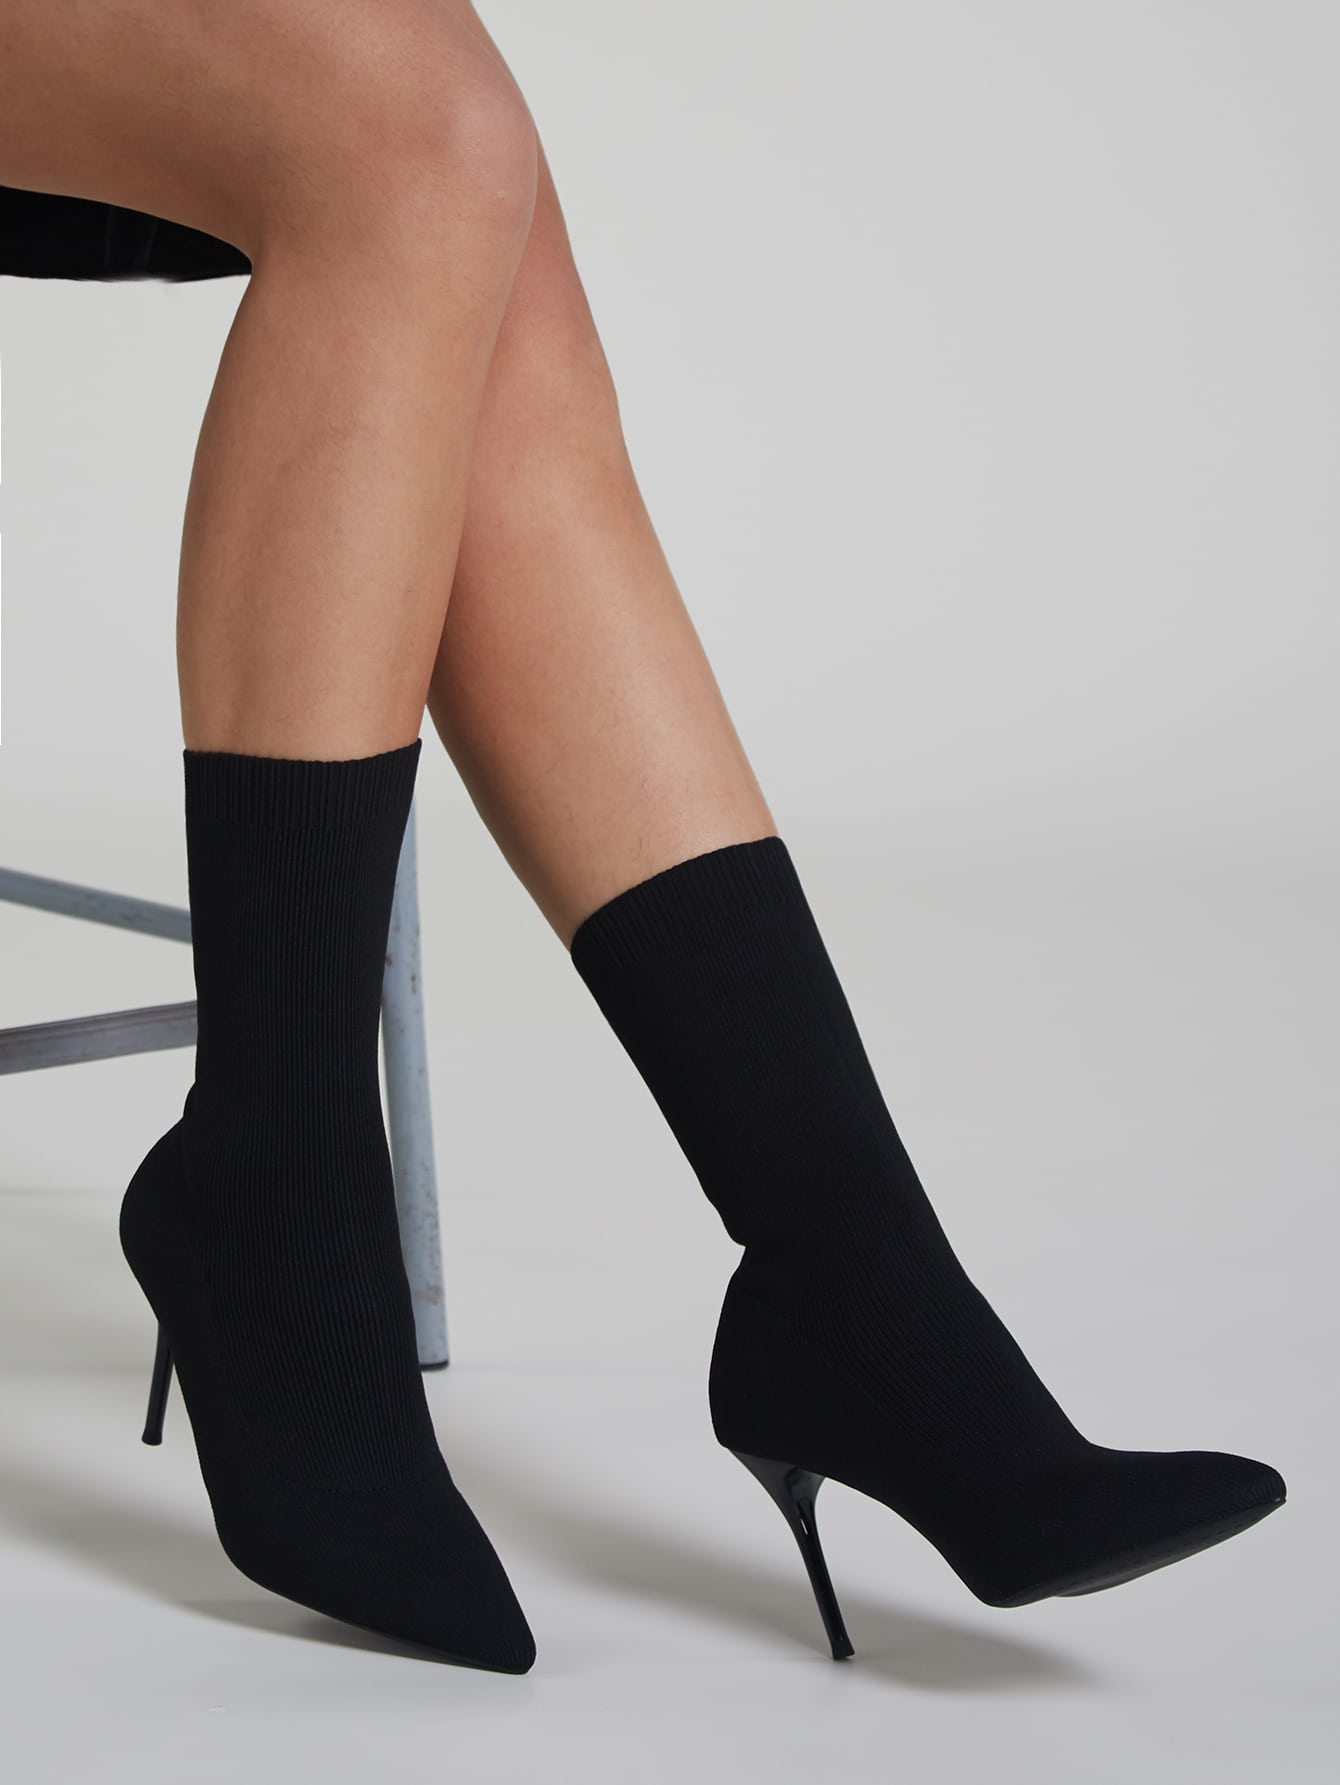 Point Toe Stiletto Heeled Knit Stretch Boots